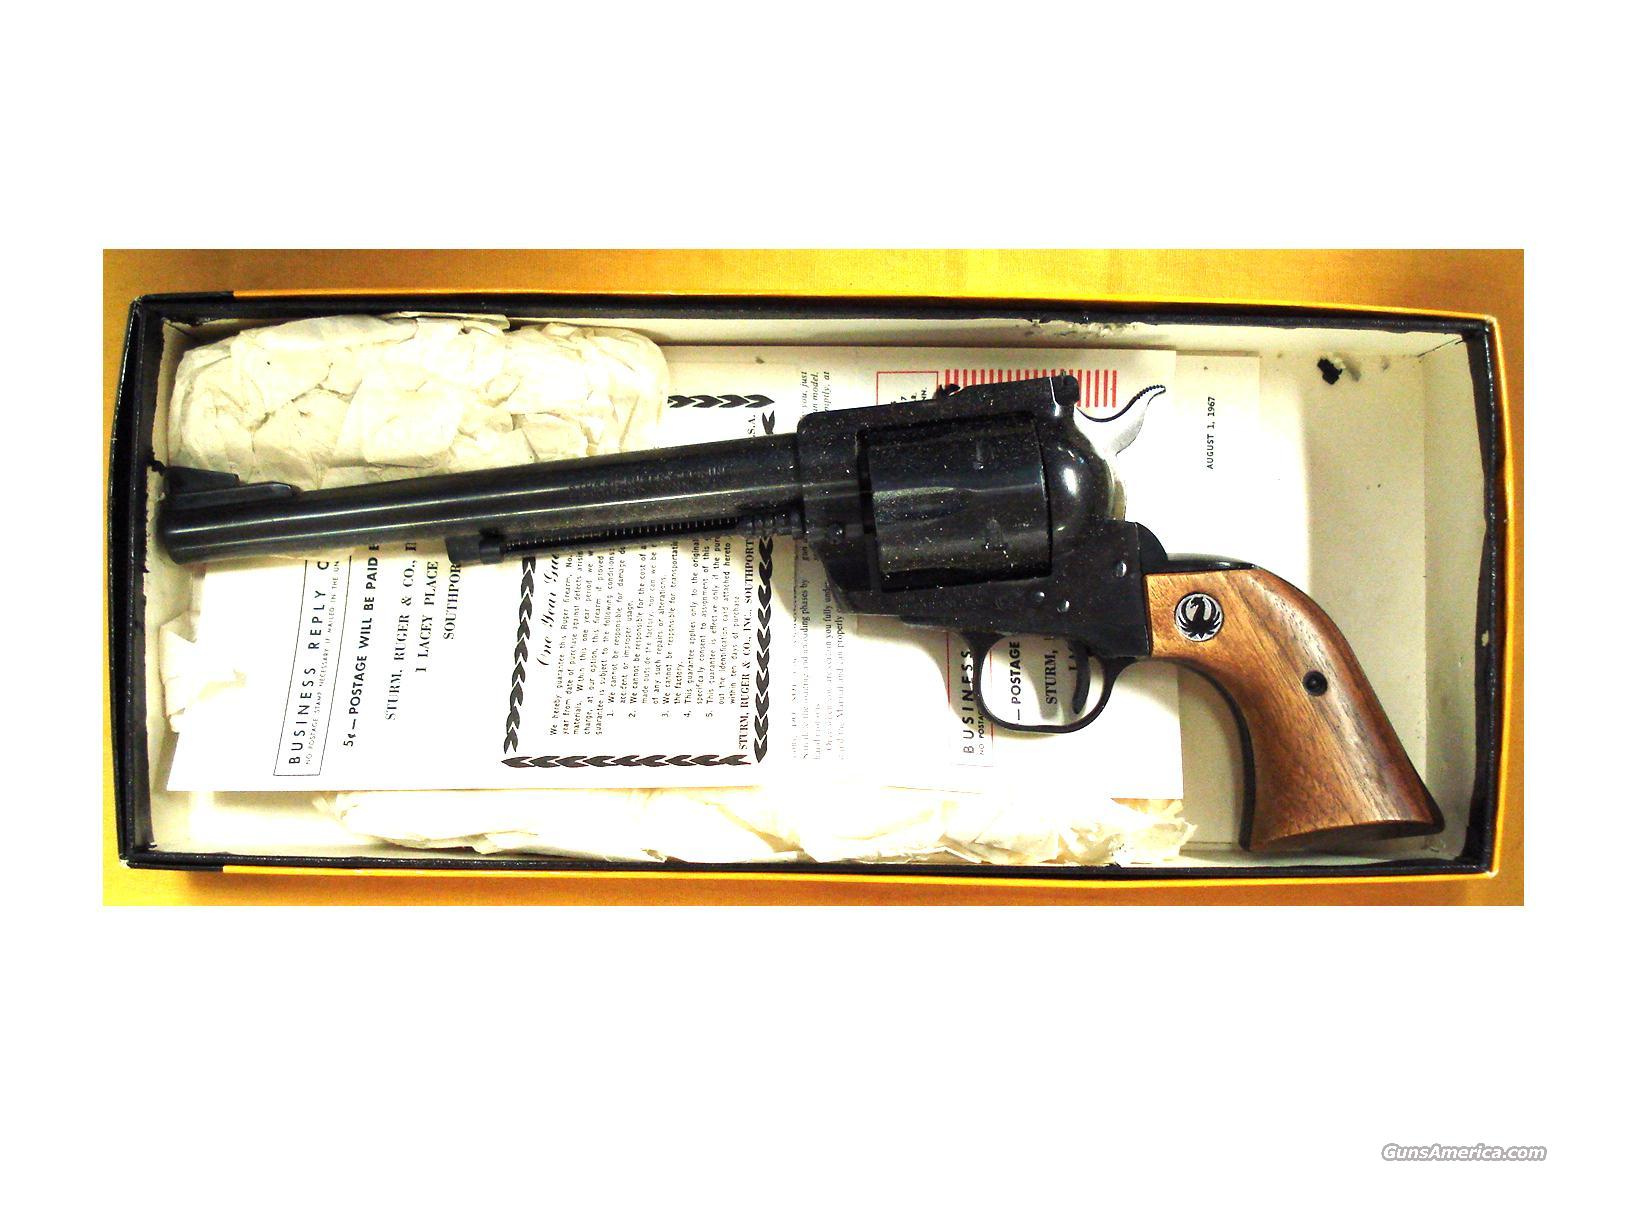 "RUGER BLACKHAWK .30 CARBINE 7 1/2""BBL  Guns > Pistols > Ruger Single Action Revolvers > Blackhawk Type"